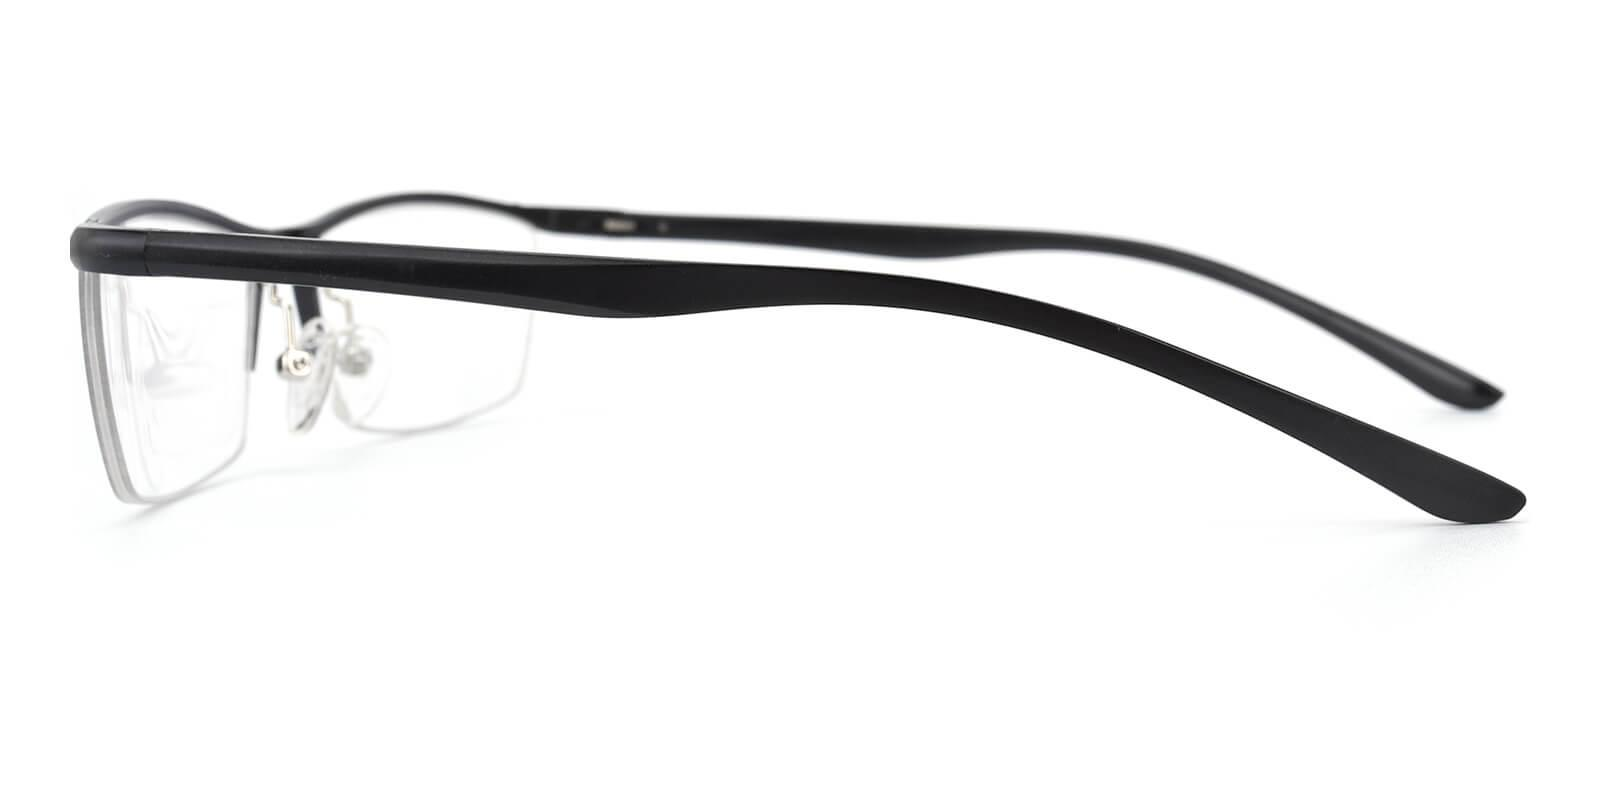 Vauseper-Black-Rectangle-Metal-Eyeglasses-additional3